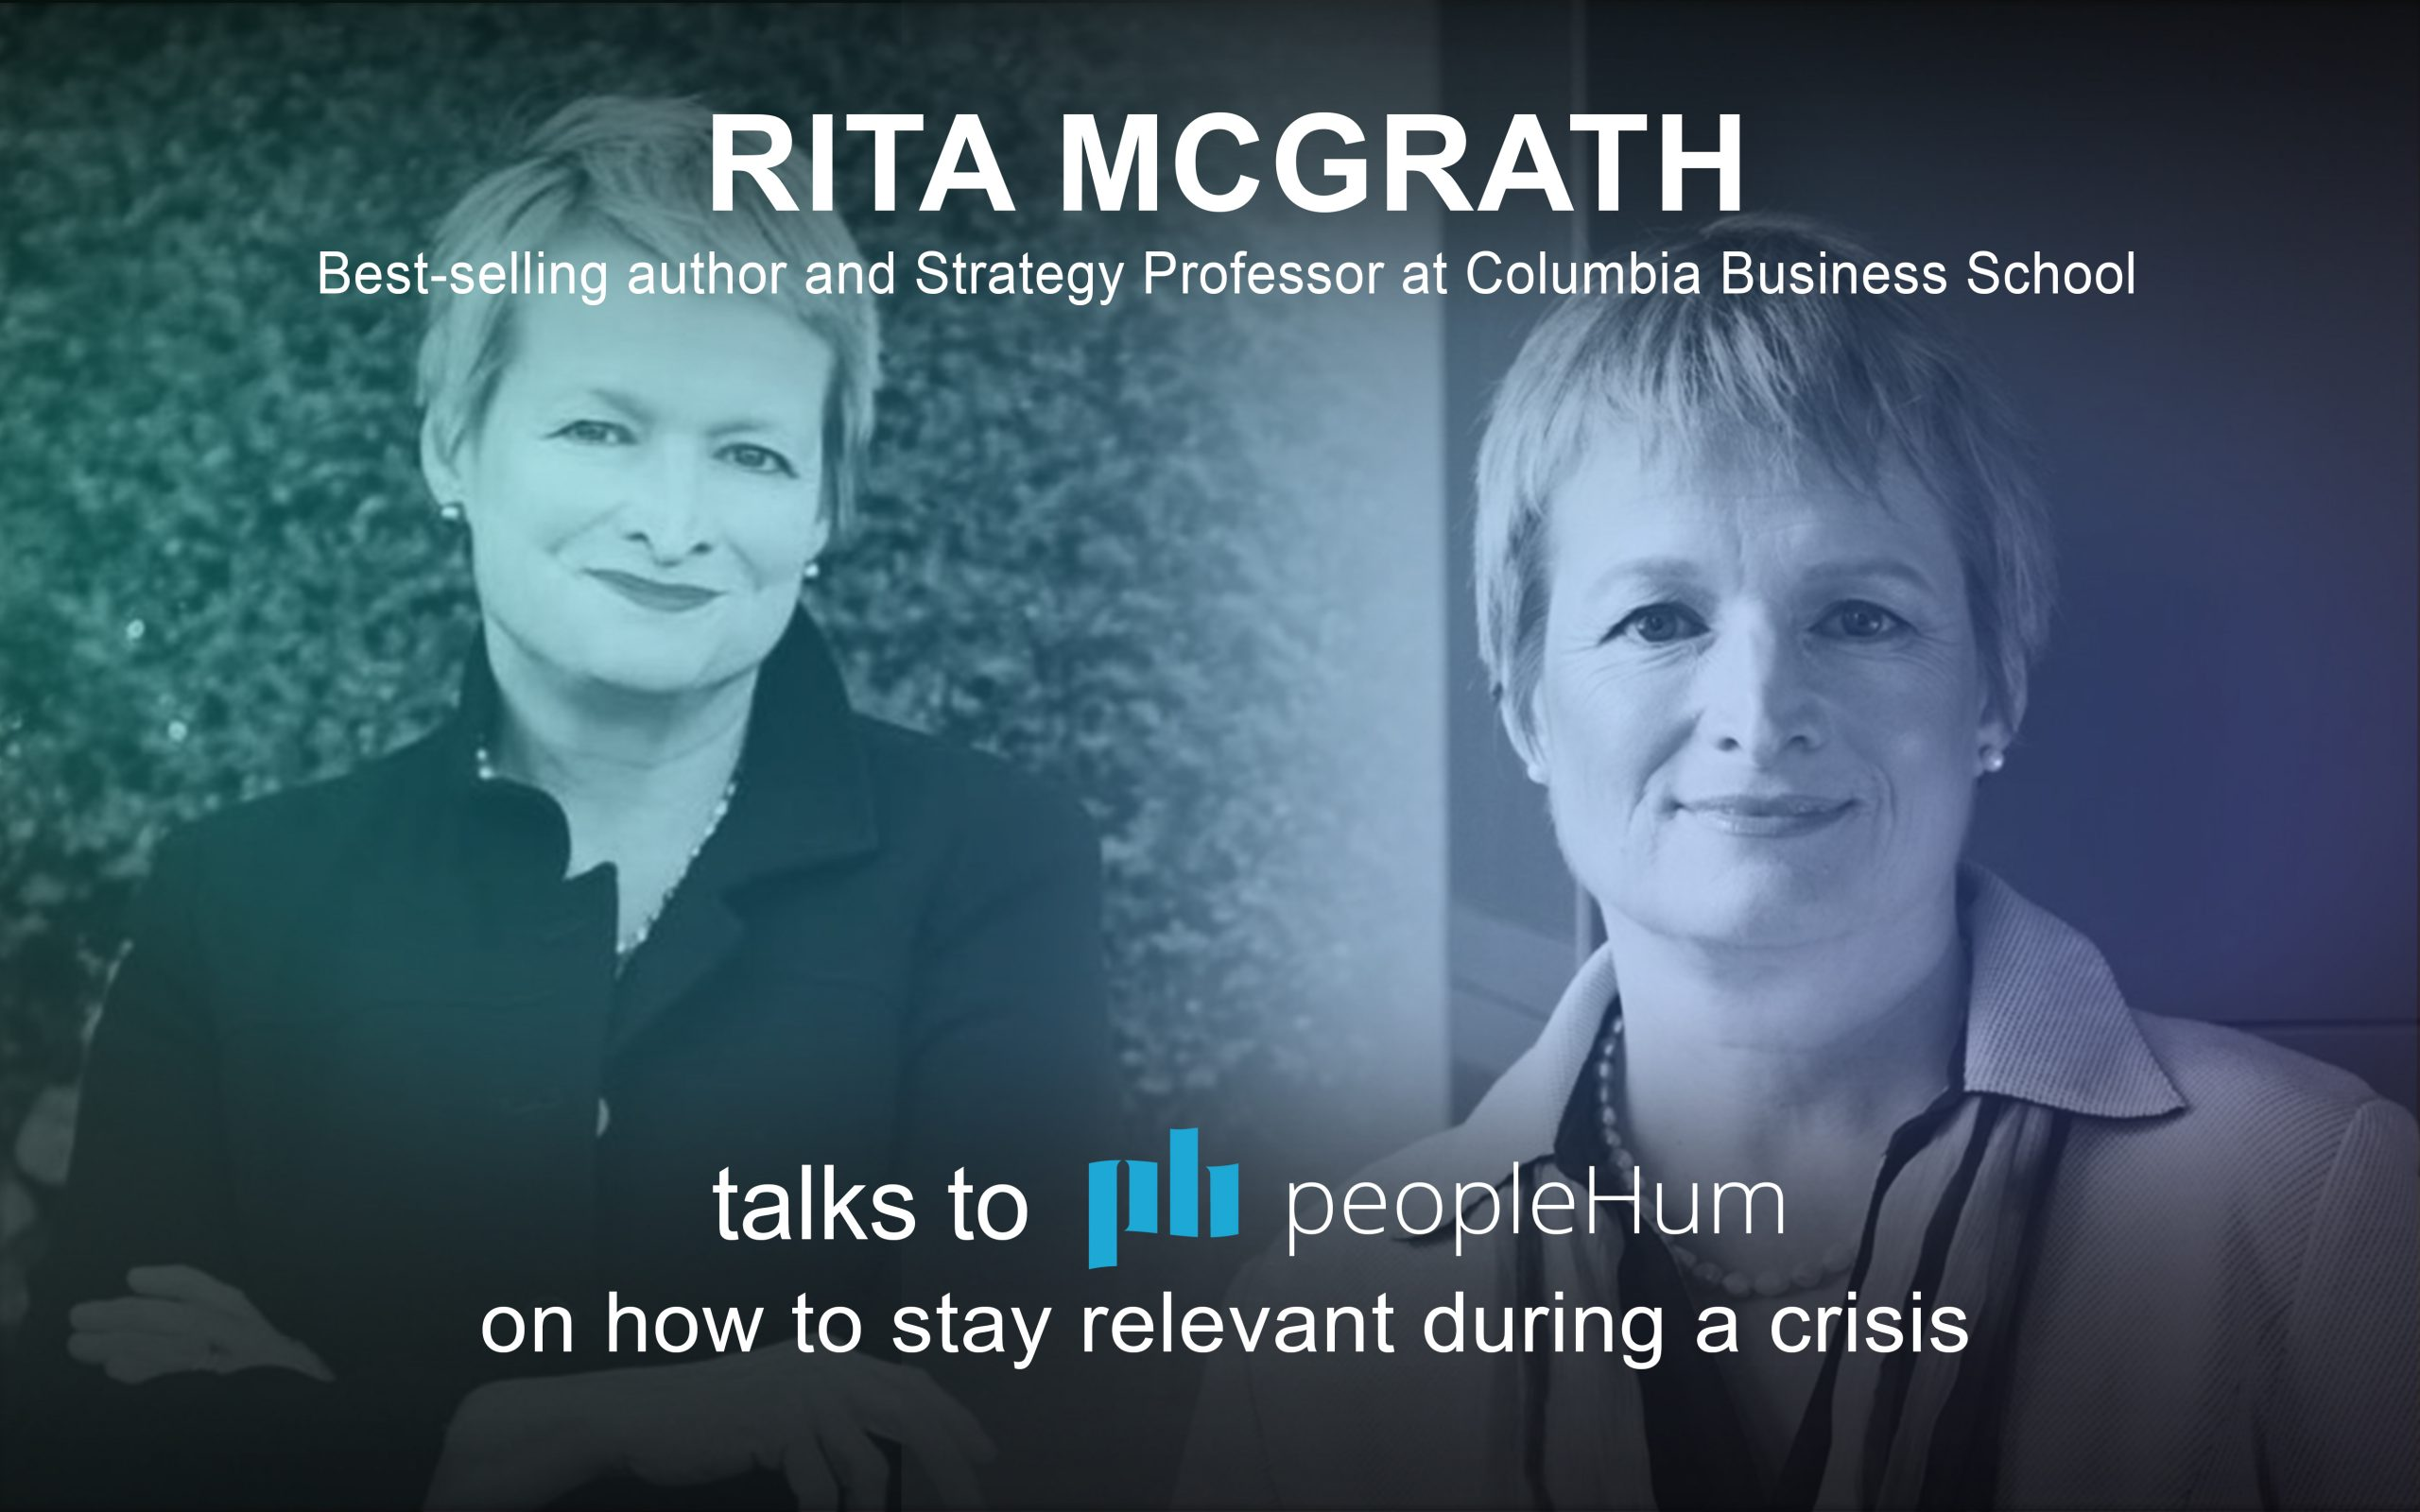 How to stay relevant during a crisis - Rita McGrath [Interview]